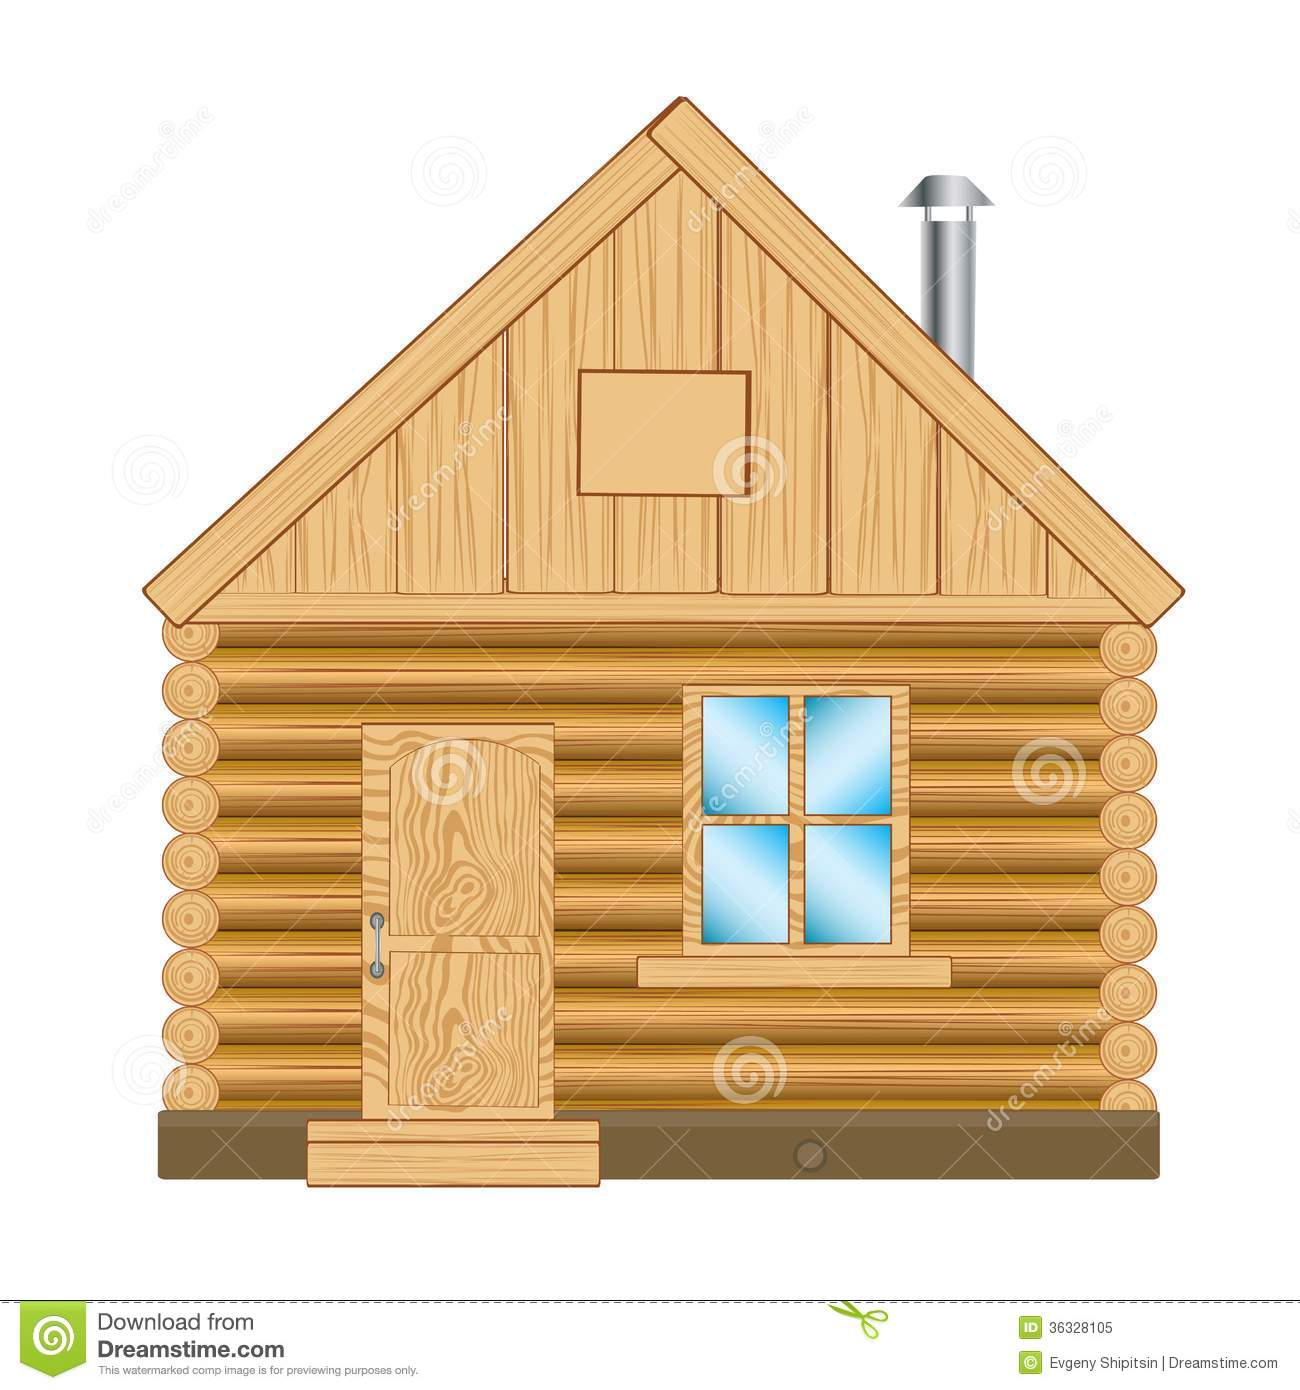 Wooden House Stock Vector. Illustration Of Camp, Estate